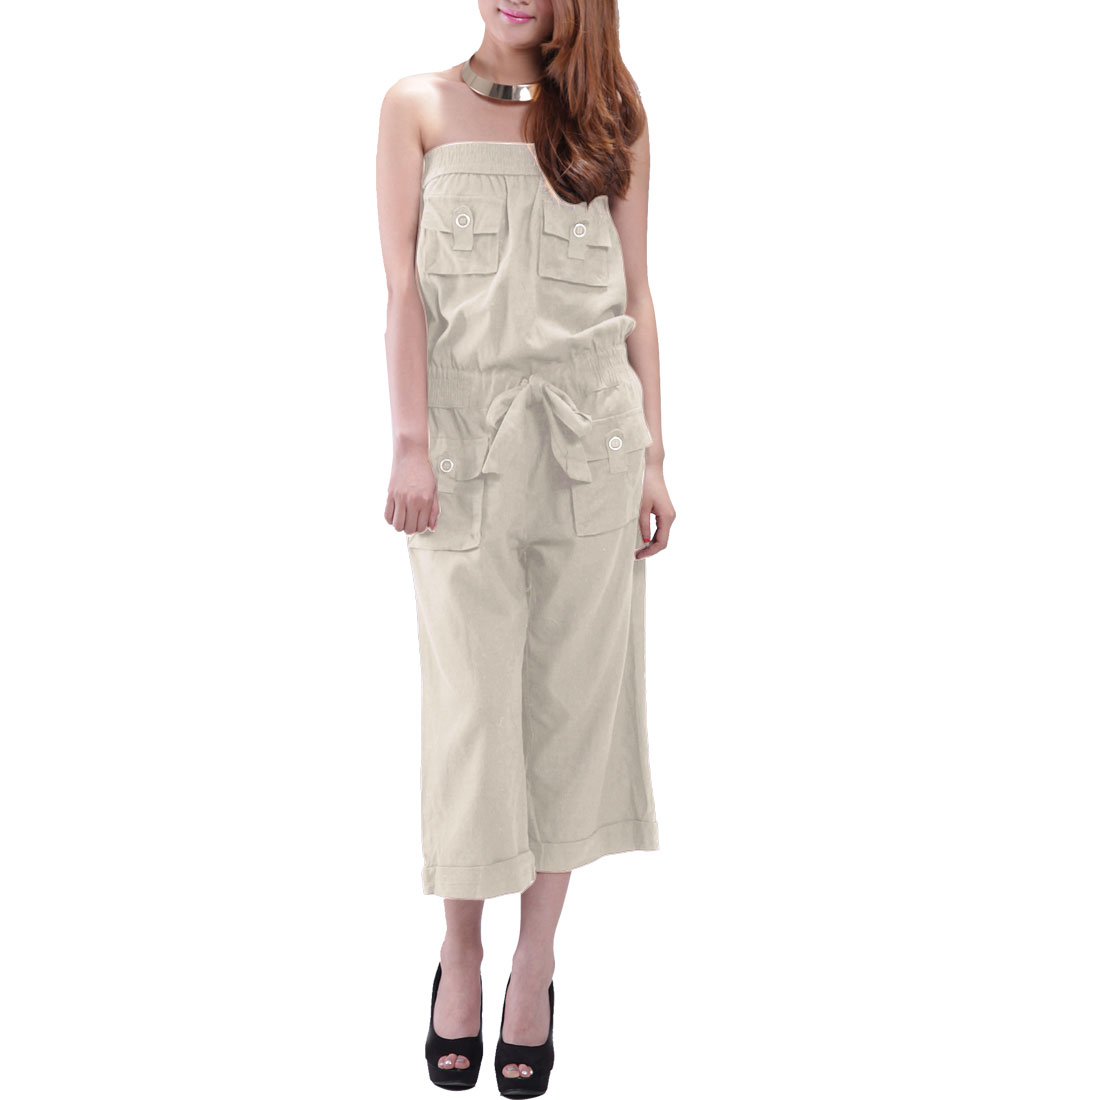 Beige Vertical Pockets Stretchy Waist Tube Jumpsuit M for Ladies